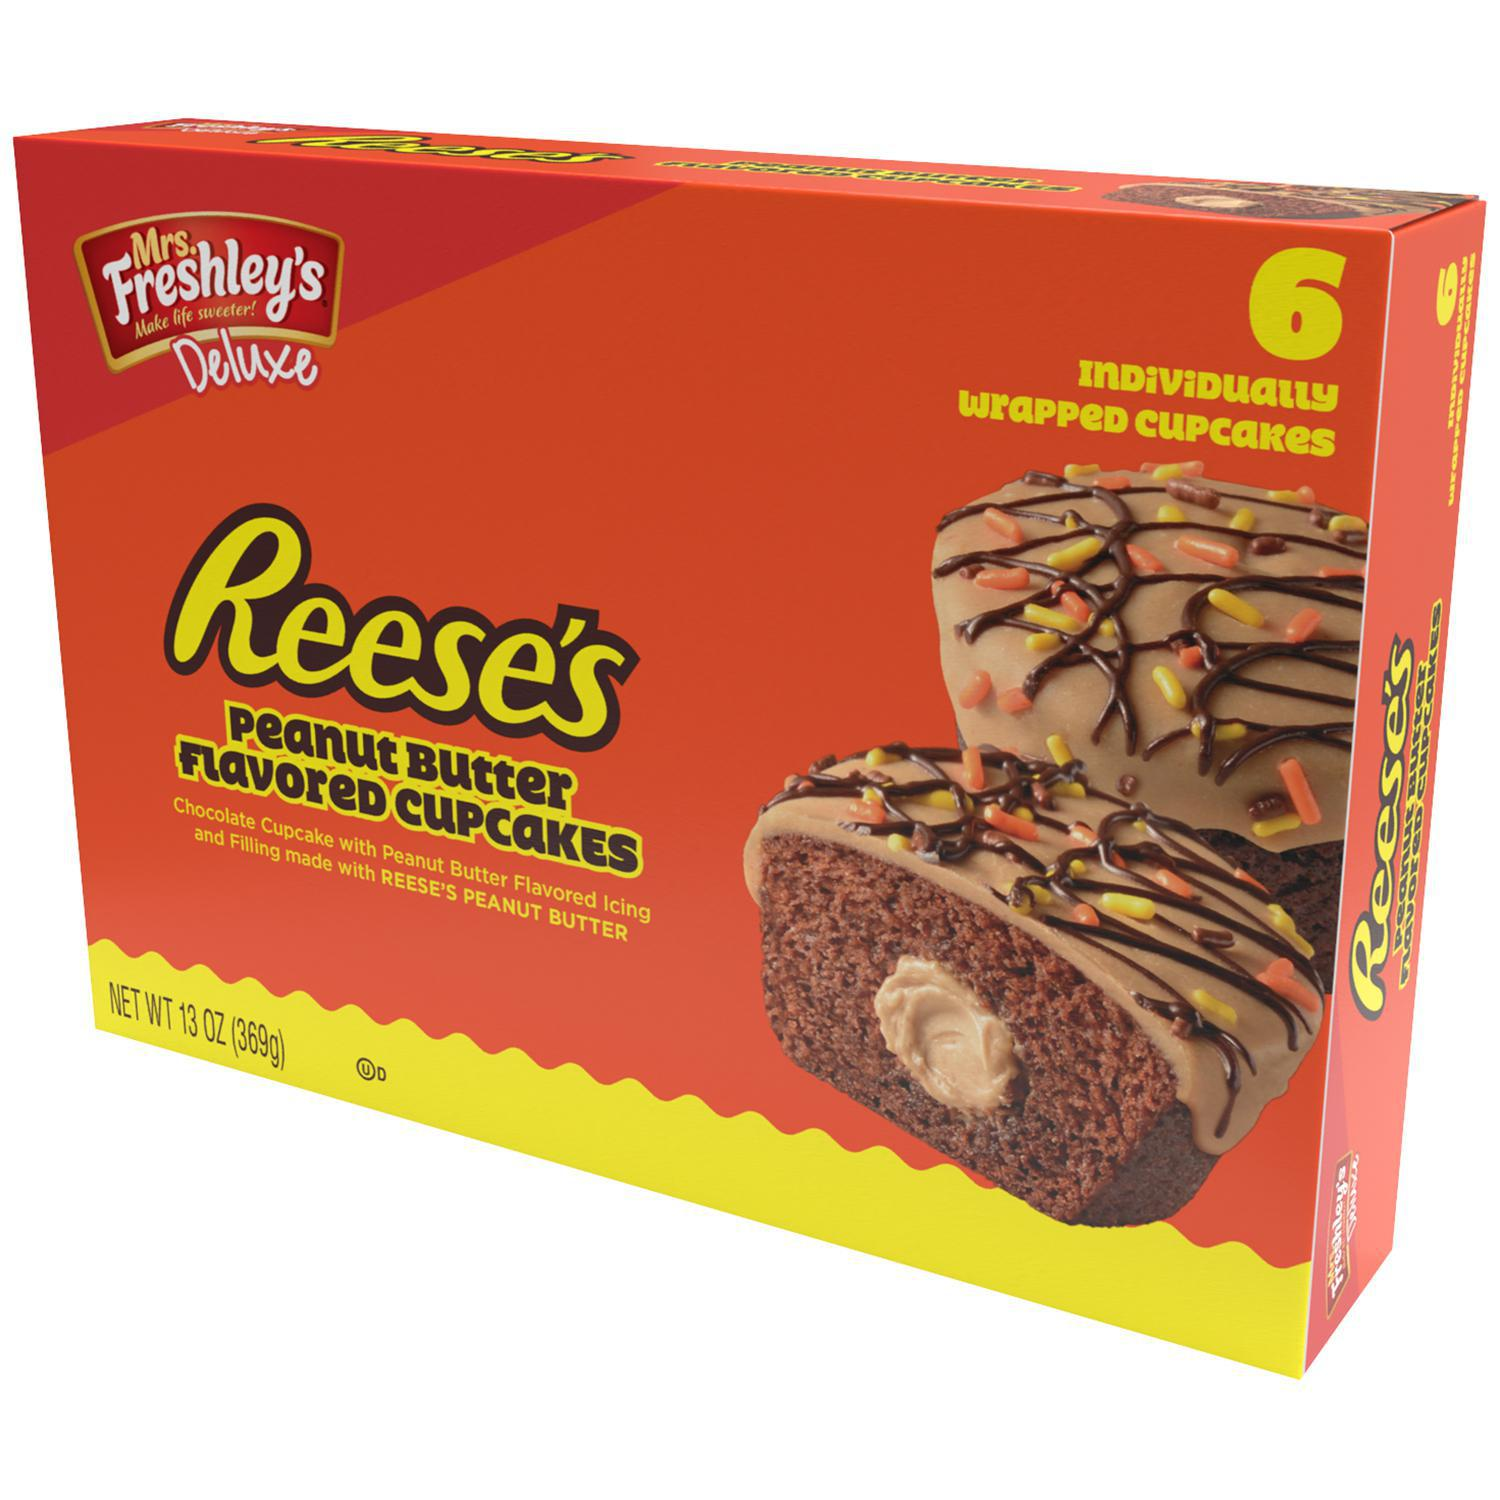 Mrs. Freshley's Reese's Peanut Butter Flavored Cupcakes 6 ct Box